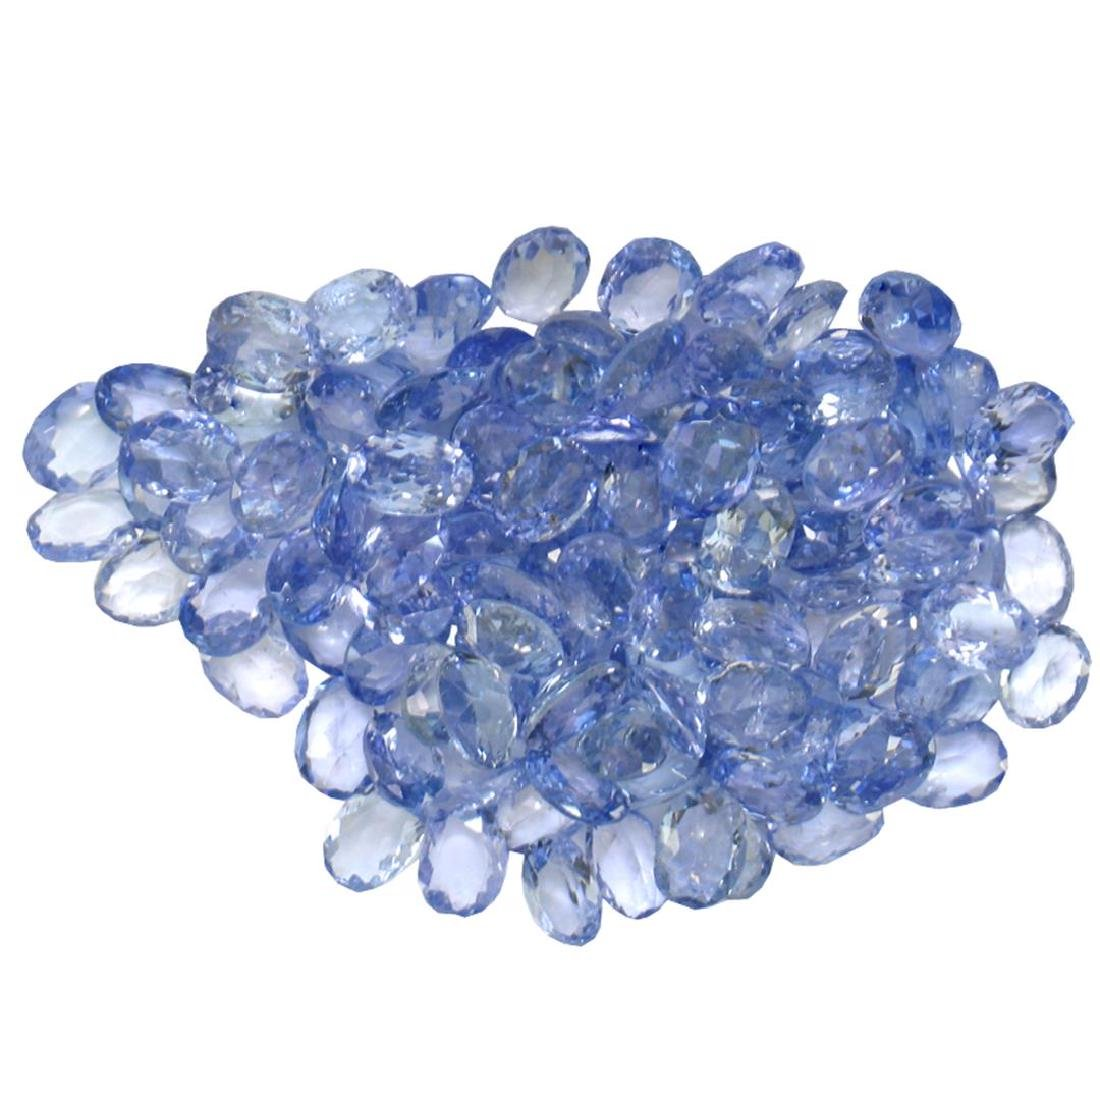 17.07 ctw Oval Mixed Tanzanite Parcel